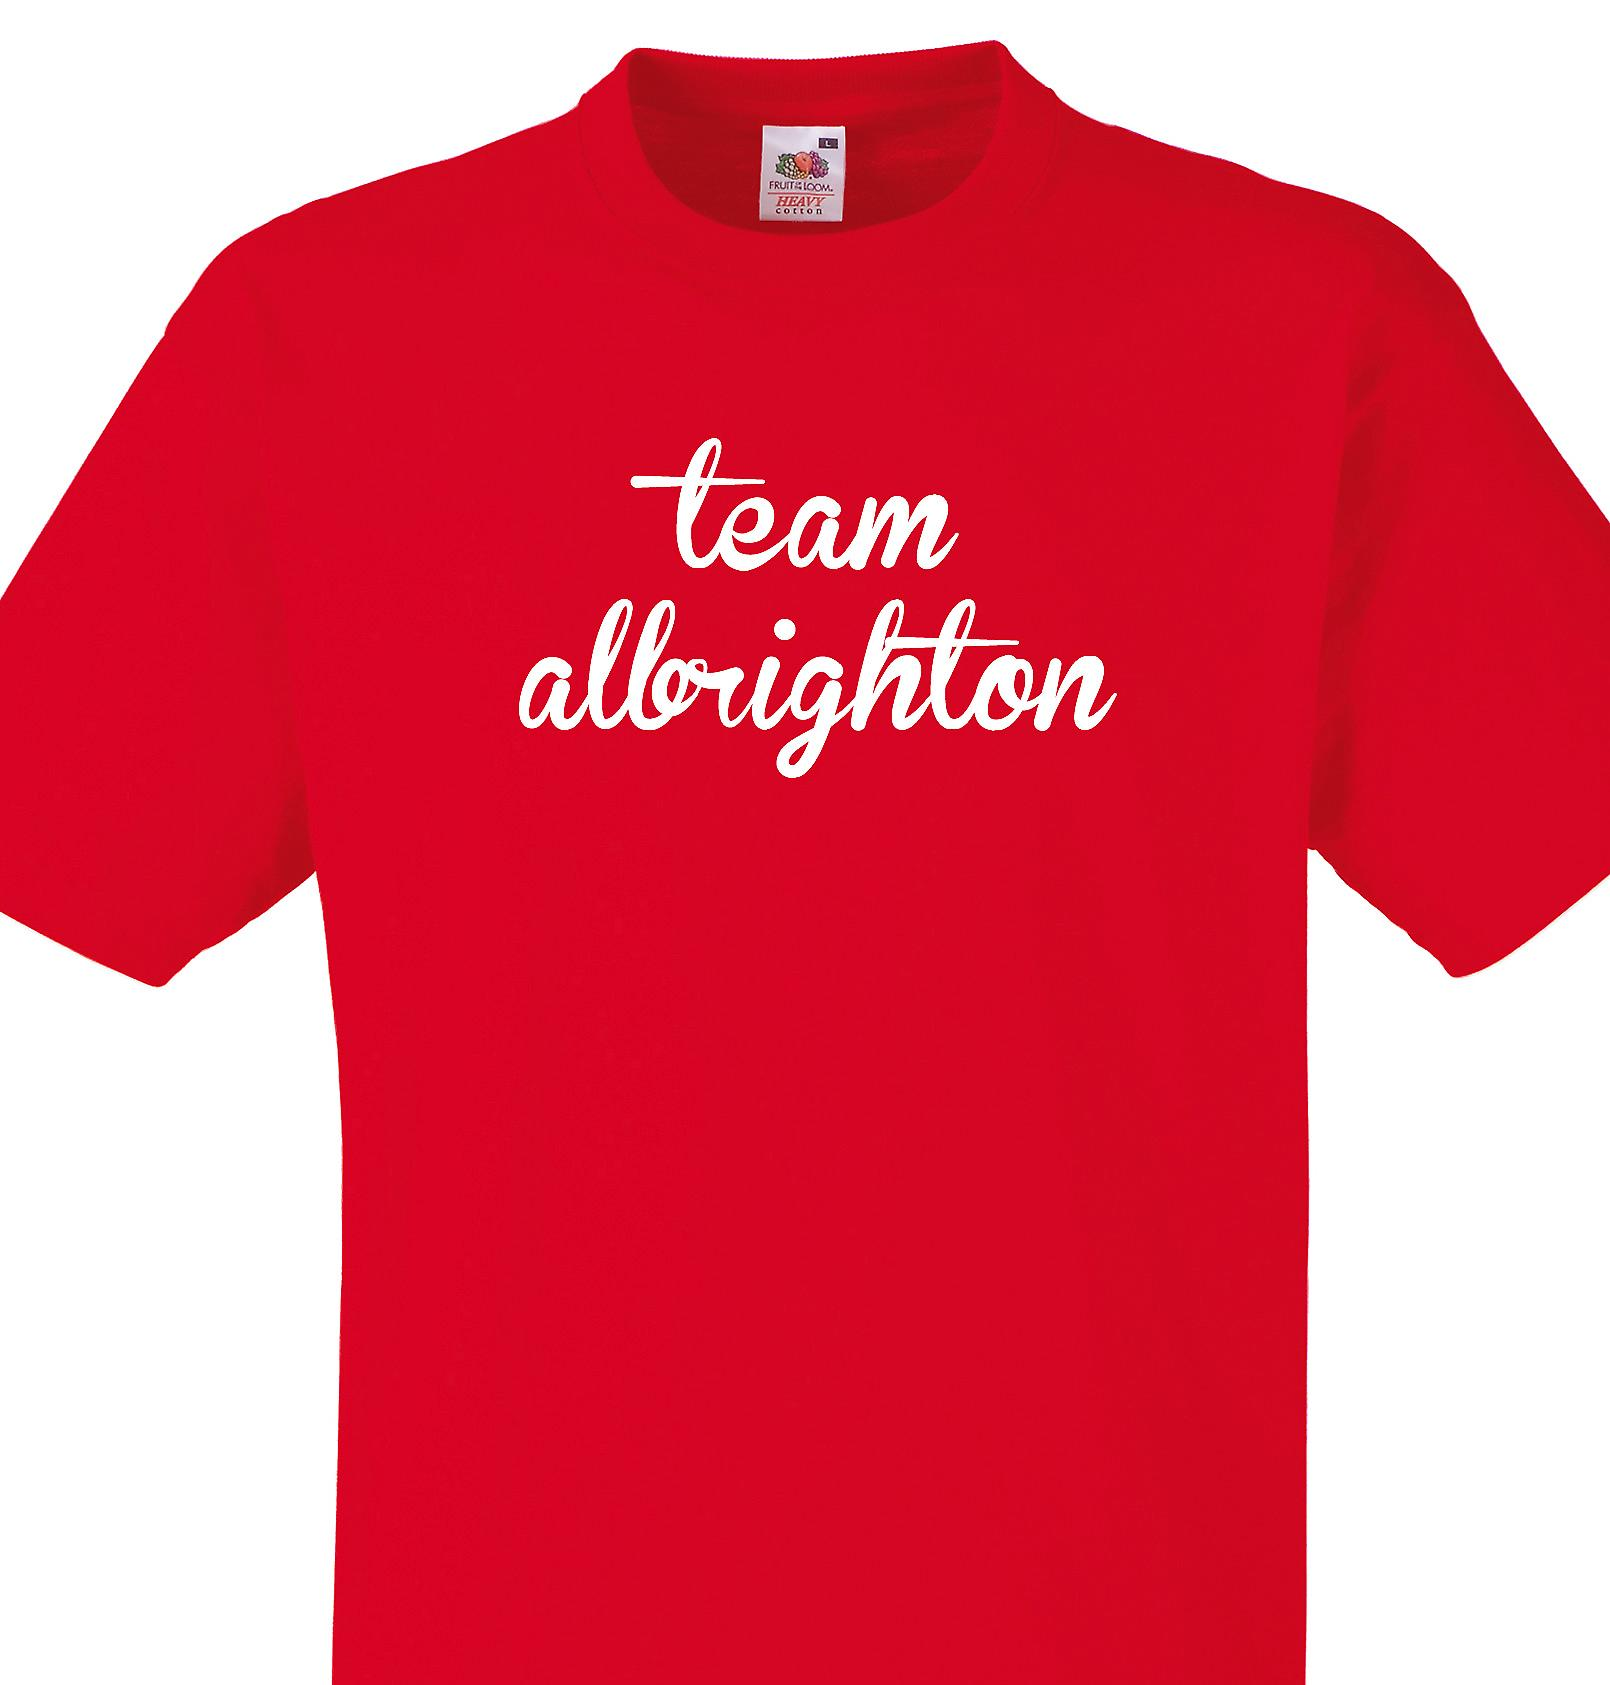 Team Albrighton Red T shirt